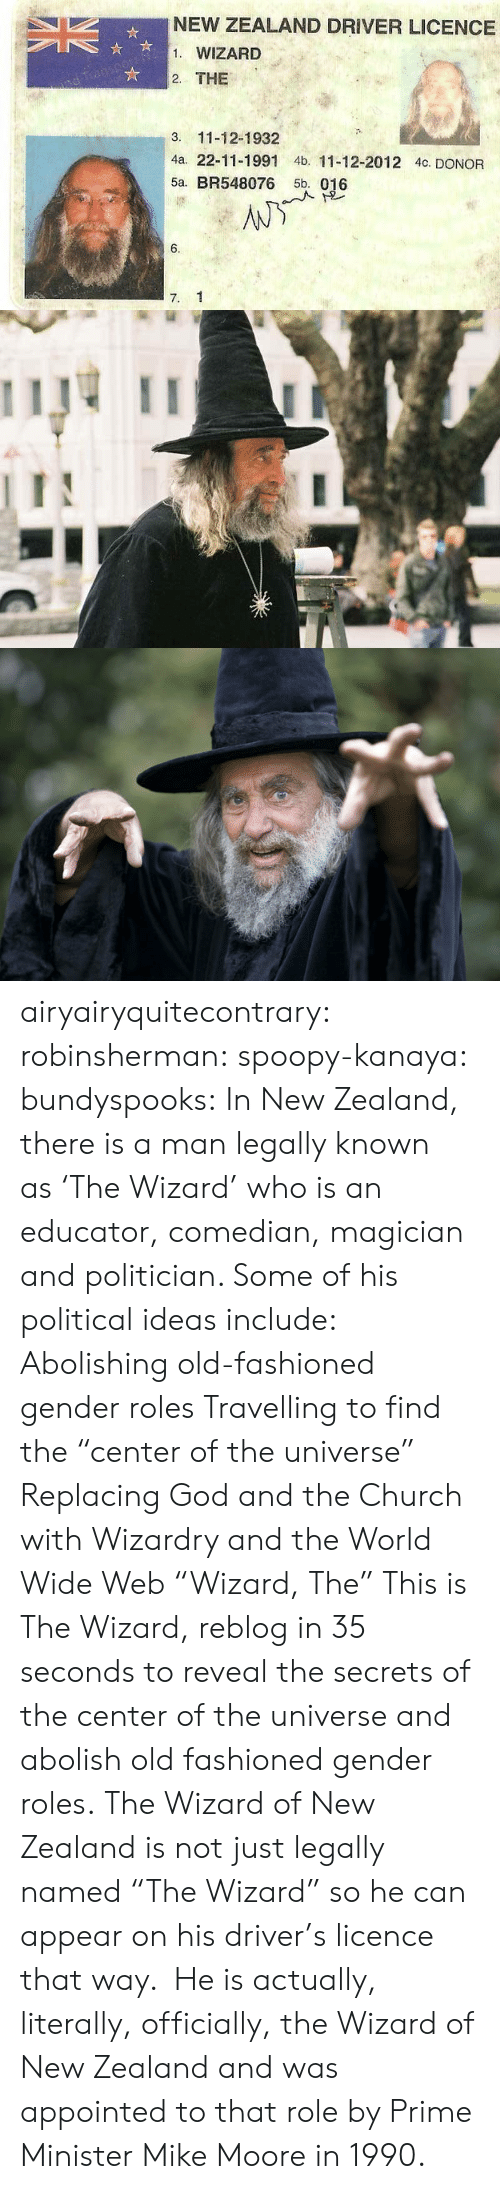 """Church, God, and Tumblr: NEW ZEALAND DRIVER LICENCE  1. WIZARD  2. THE  3. 11-12-1932  4a. 22-11-1991 4b. 11-12-2012 4c. DONOR  5a. BR548076 5b. 016  6.  7. 1 airyairyquitecontrary:  robinsherman:  spoopy-kanaya:  bundyspooks:  In New Zealand, there is a man legally known as'The Wizard' whois an educator, comedian, magician and politician. Some of his political ideas include: Abolishing old-fashioned gender roles Travelling to find the """"center of the universe"""" Replacing God and the Church with Wizardry and the World Wide Web  """"Wizard, The""""  This is The Wizard, reblog in 35 seconds to reveal the secrets of the center of the universe and abolish old fashioned gender roles.  The Wizard of New Zealand is not just legally named""""The Wizard"""" so he can appear on his driver's licence that way. He is actually, literally, officially, the Wizard of New Zealand and was appointed to that role by Prime Minister Mike Moore in 1990."""